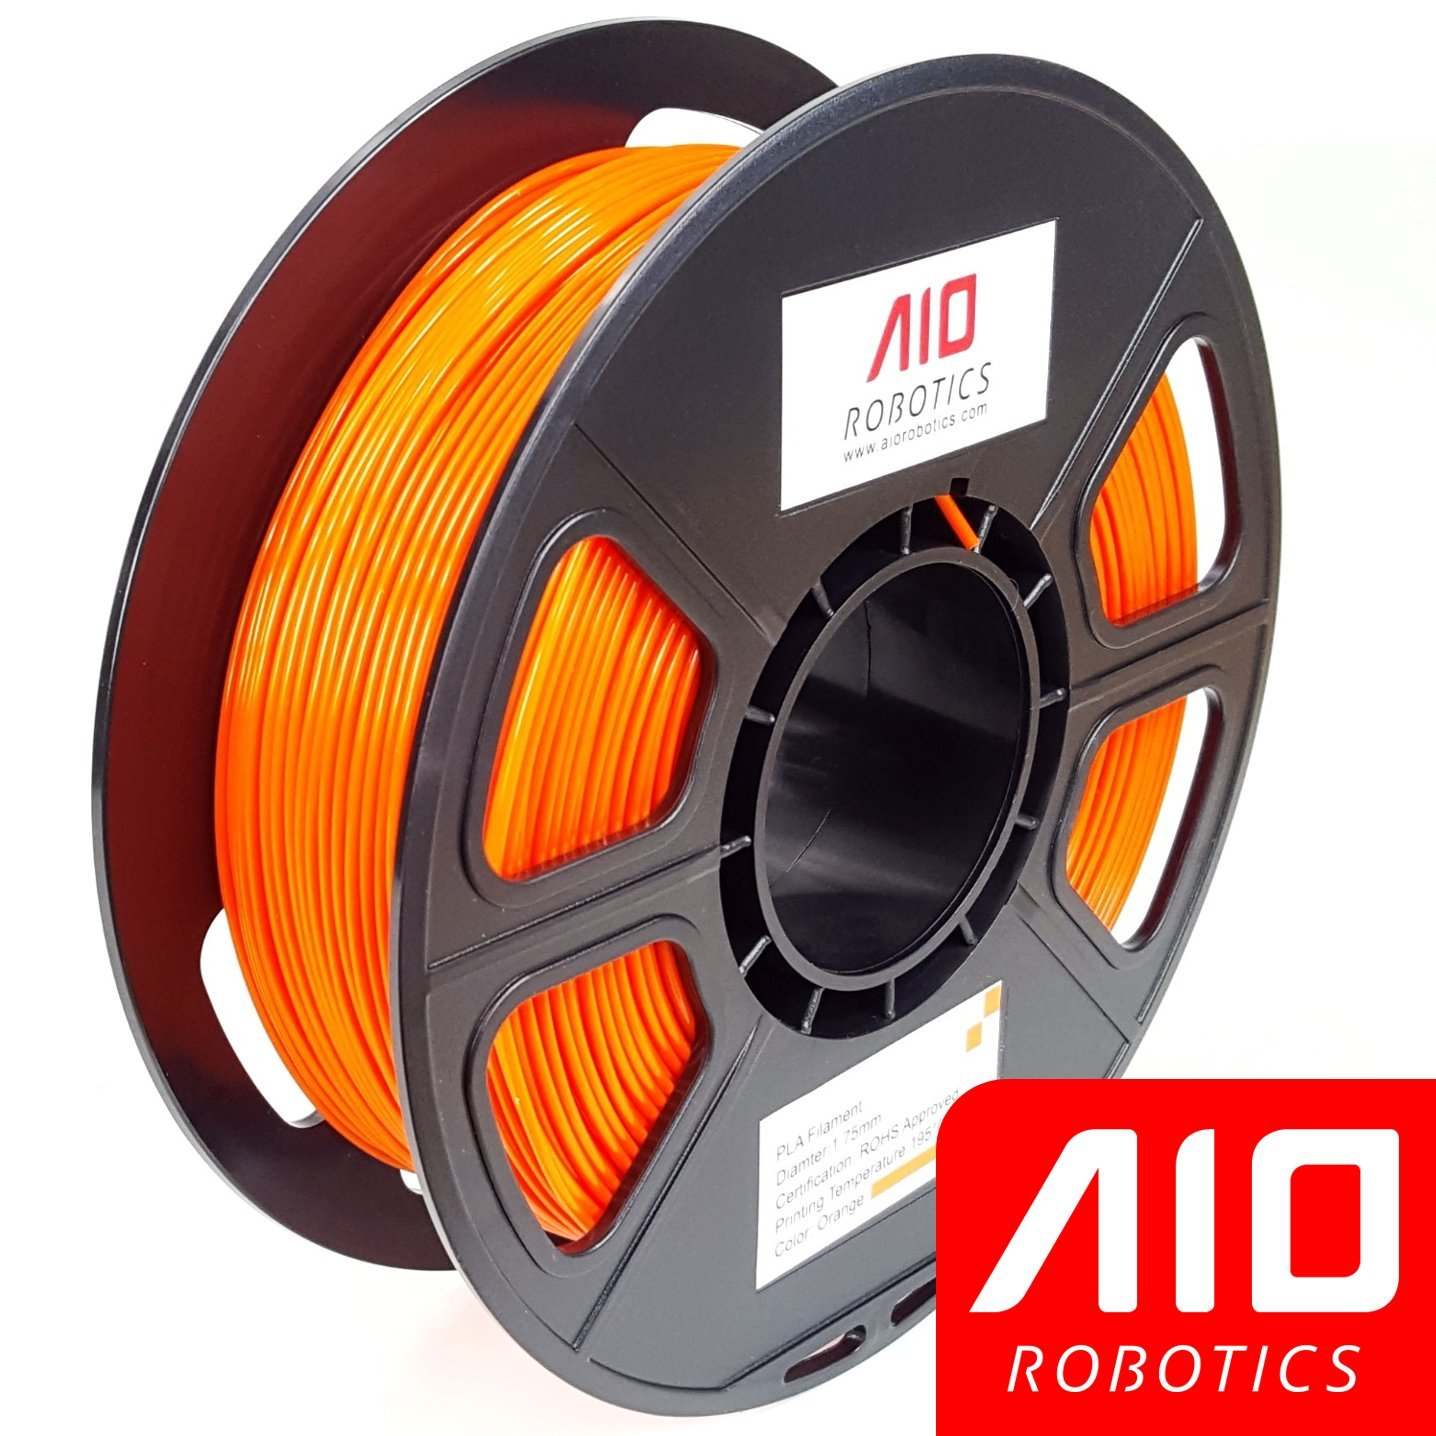 AIO Robotics AIOORANGE PLA 3D Printer Filament, 0.5 kg Spool, Dimensional Accuracy +/- 0.02 mm, 1.75 mm, Orange